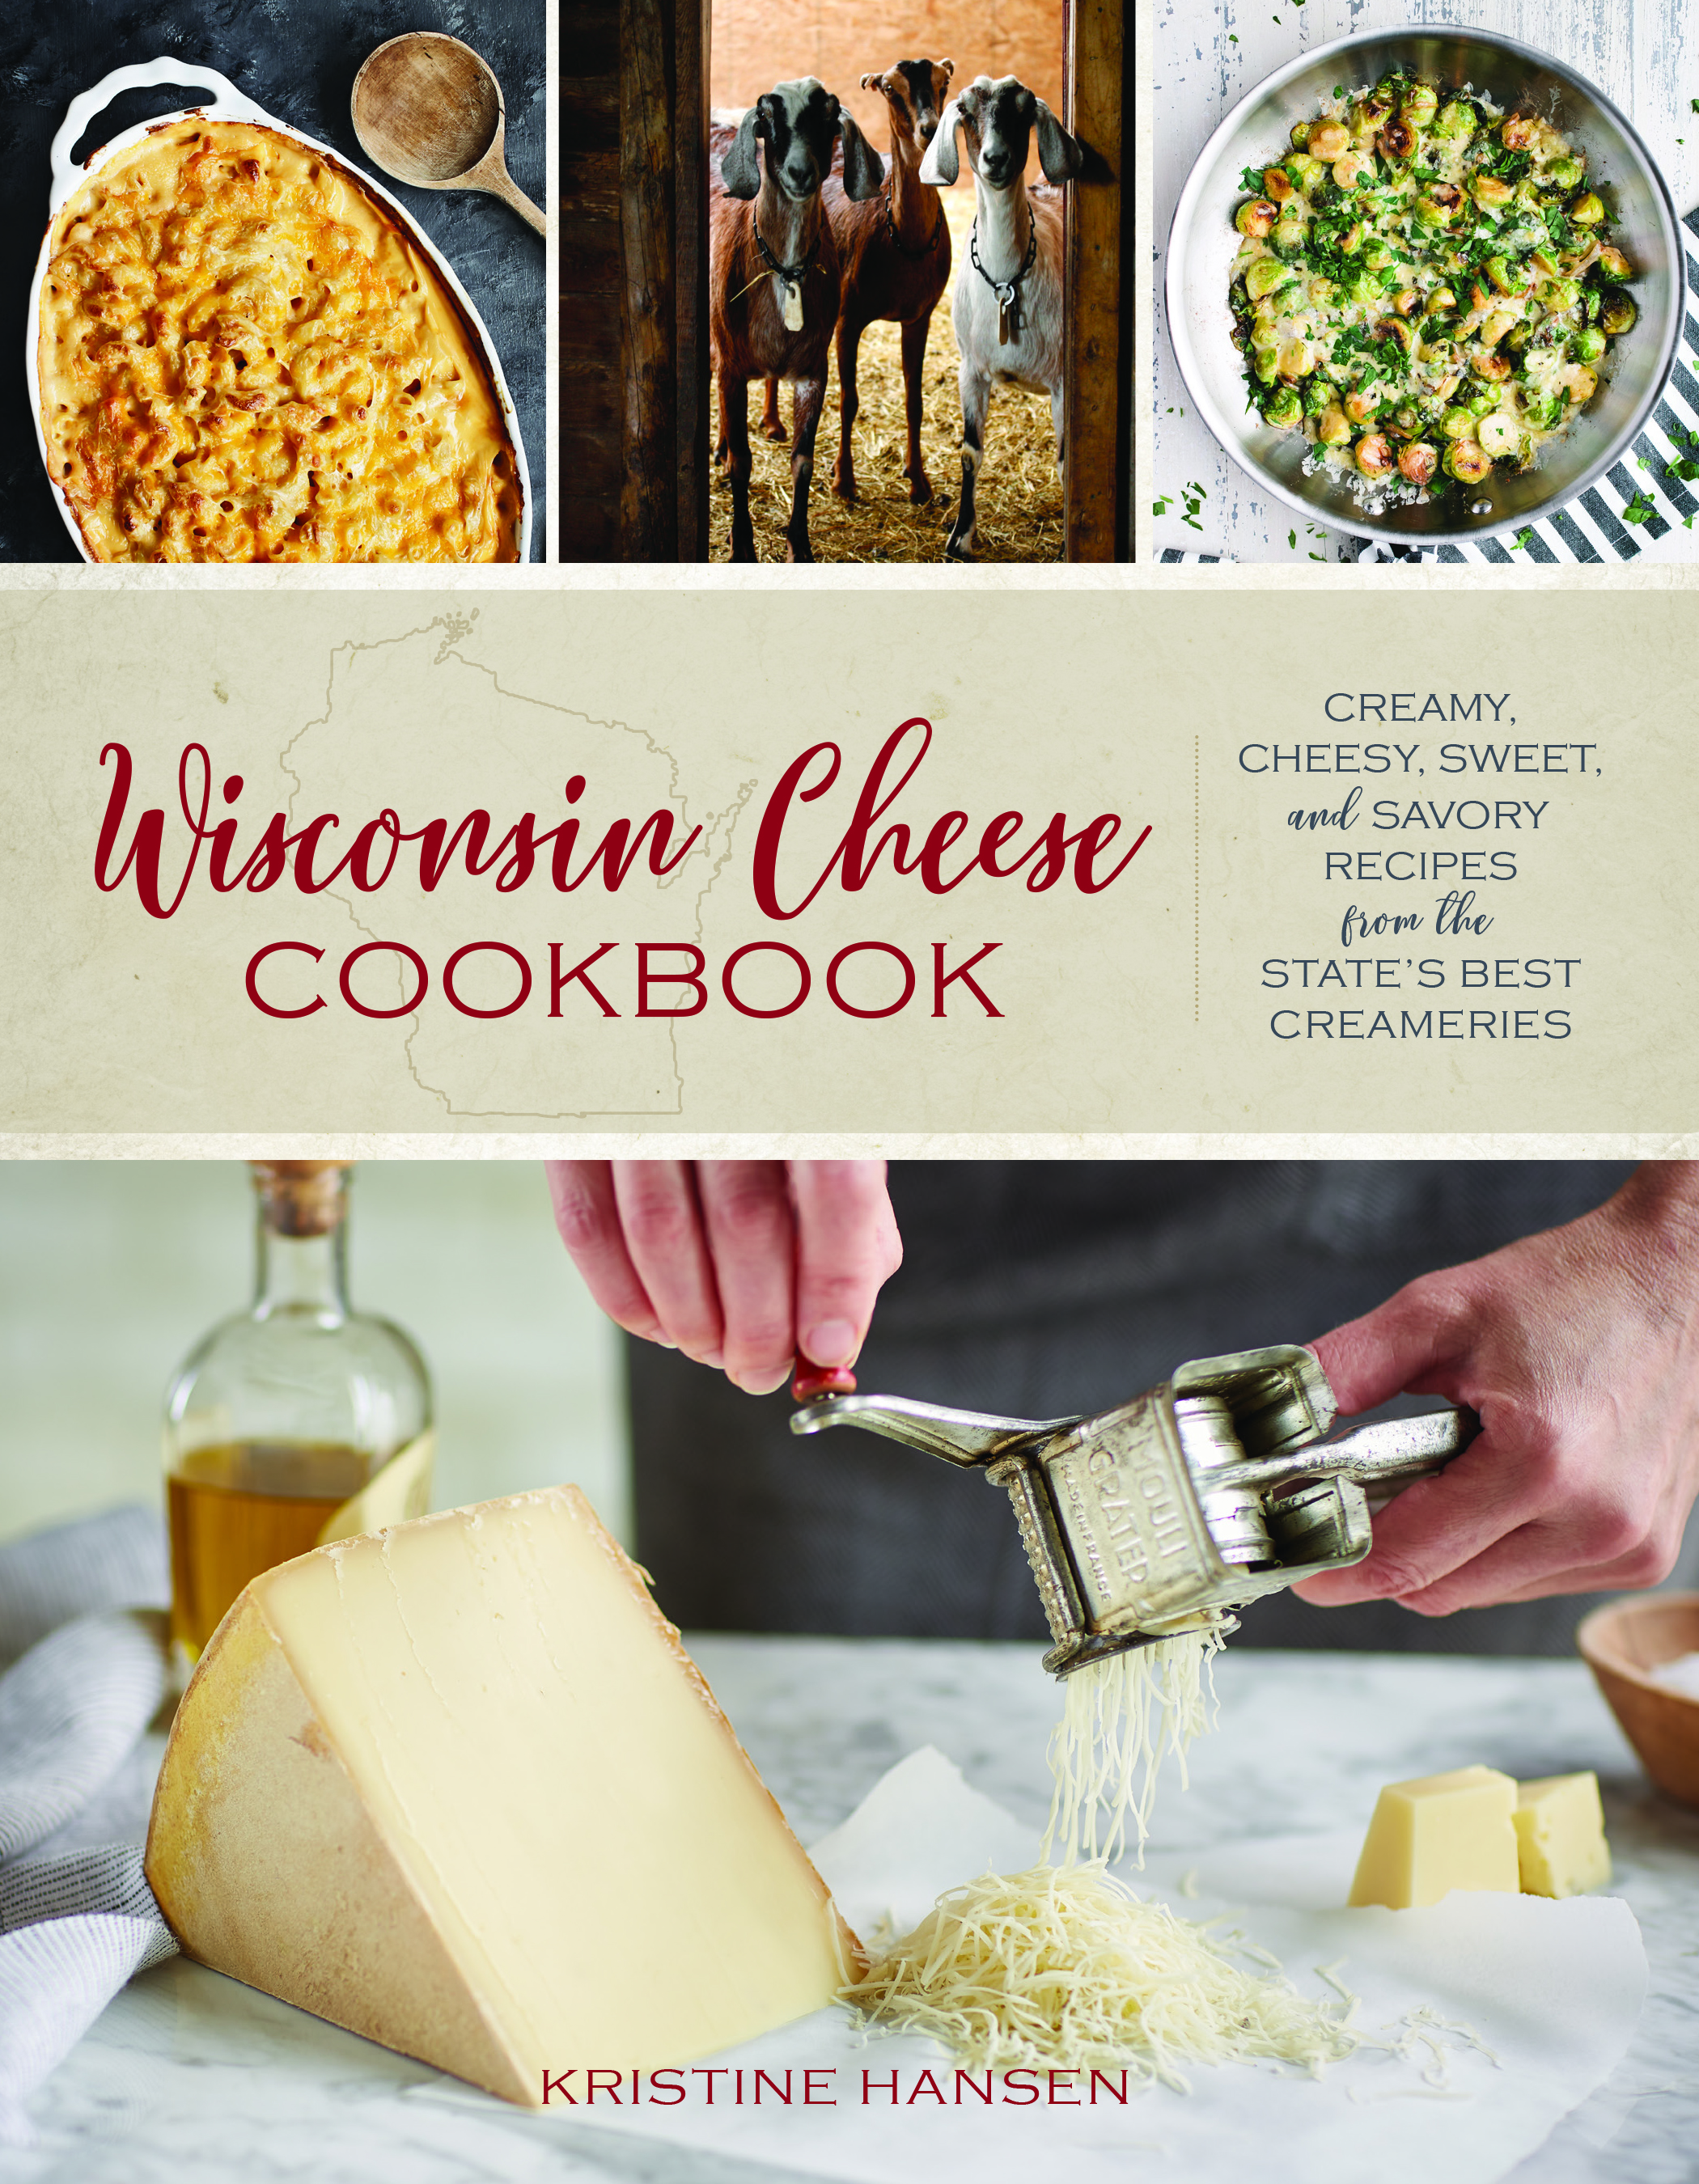 The Wisconsin Cheese Cookbook: Creamy, Cheesy, Sweet, and Savory Recipes from the State's Best Creameries